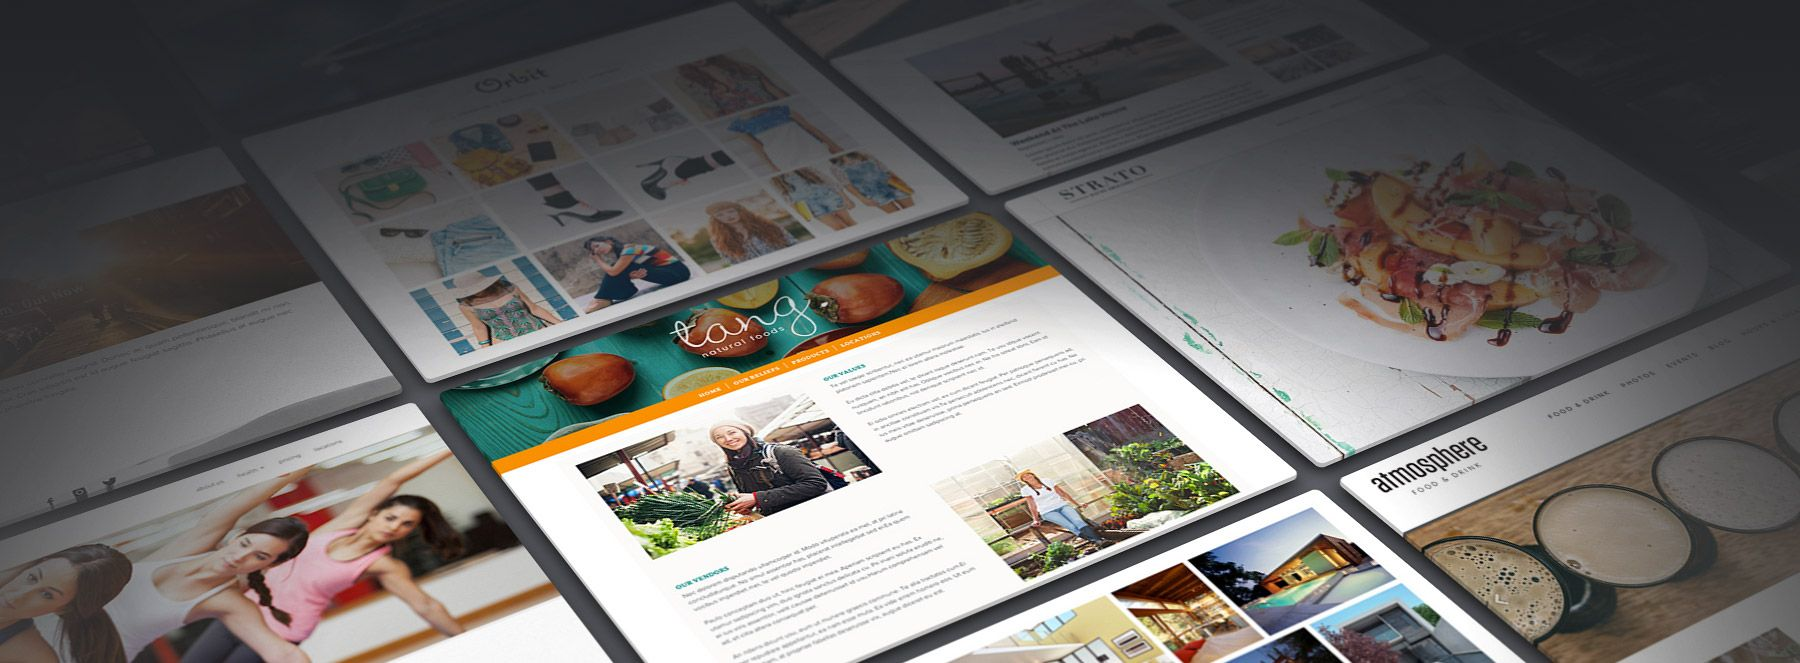 build a website with great design